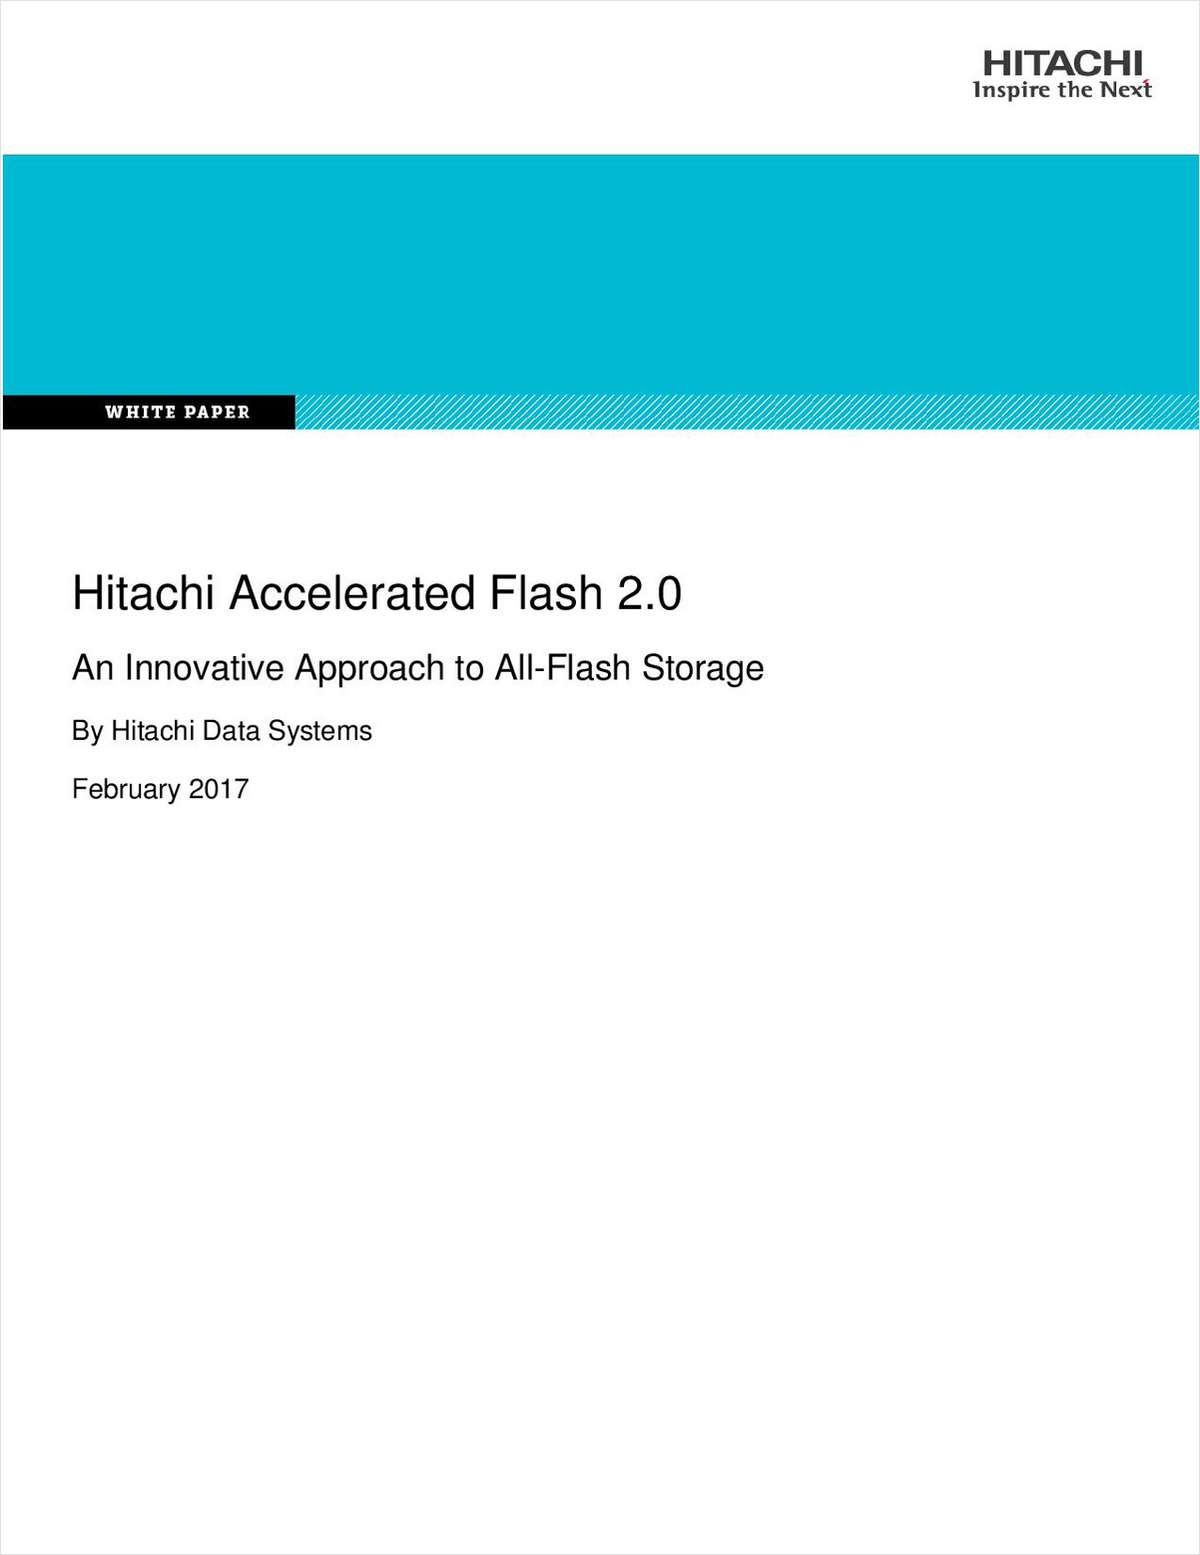 An Innovative Approach to All-Flash Storage